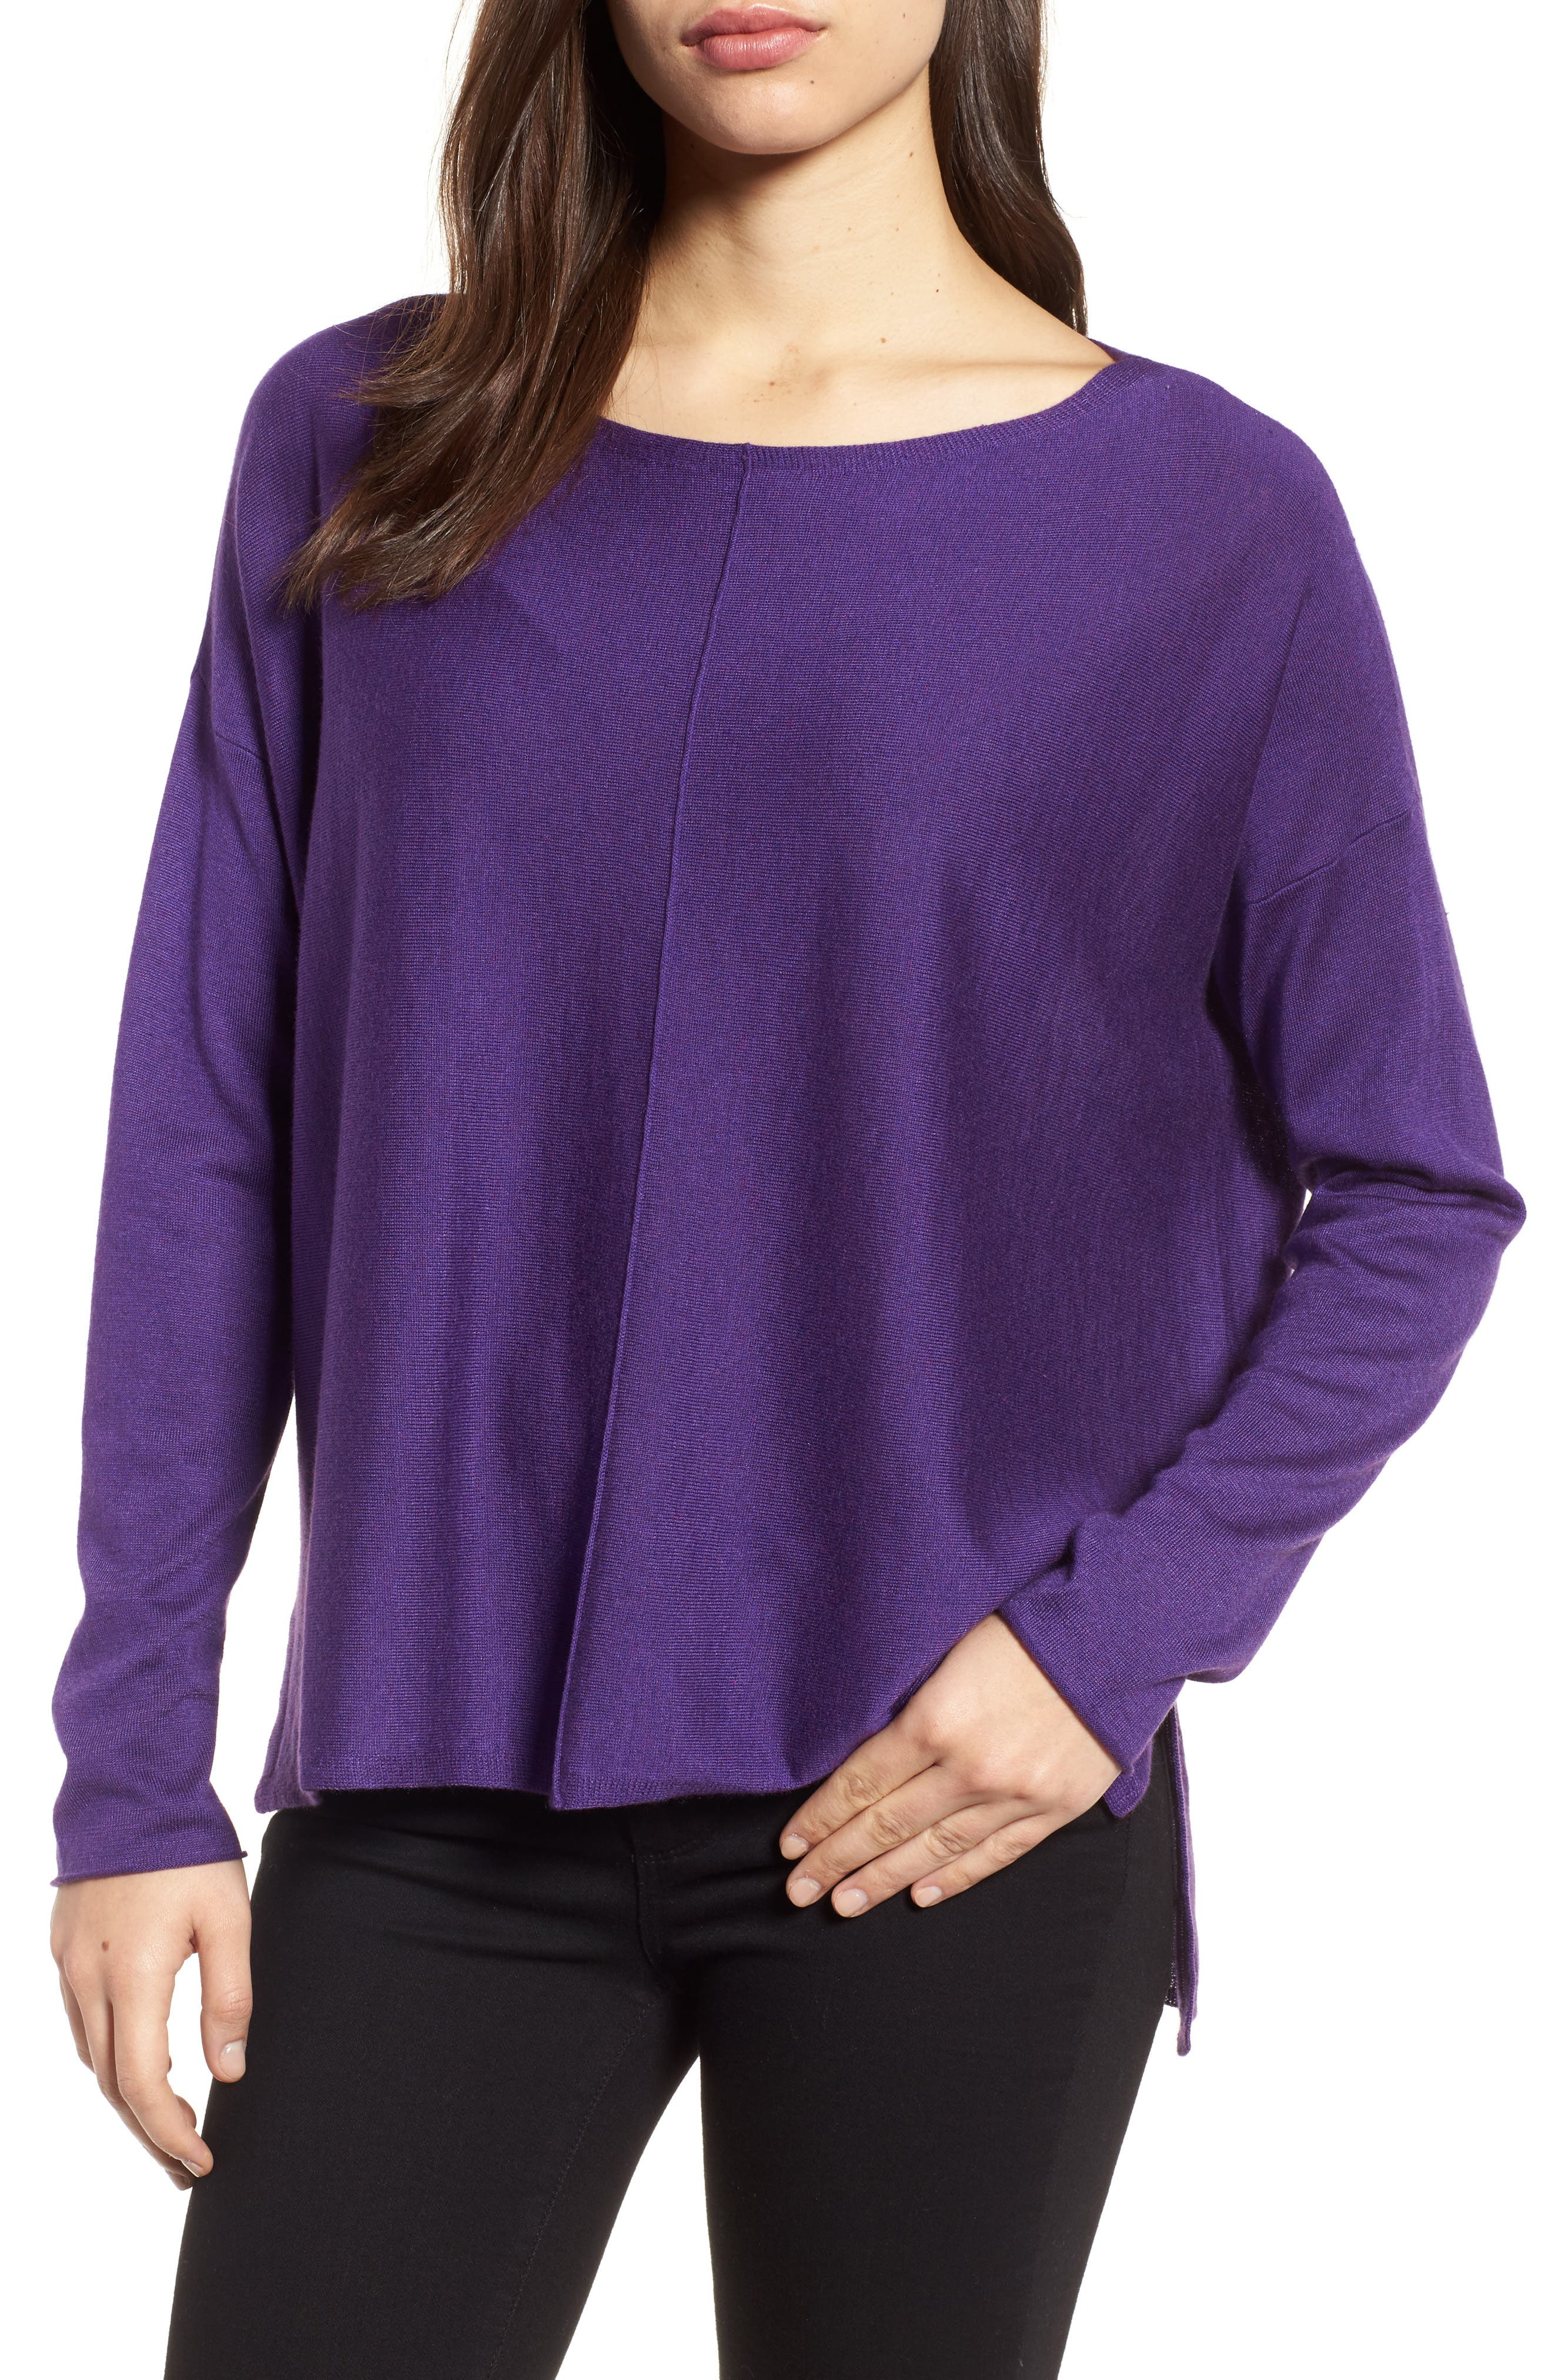 Tencel<sup>®</sup> Lyocell Blend High/Low Sweater,                         Main,                         color, Ultraviolet